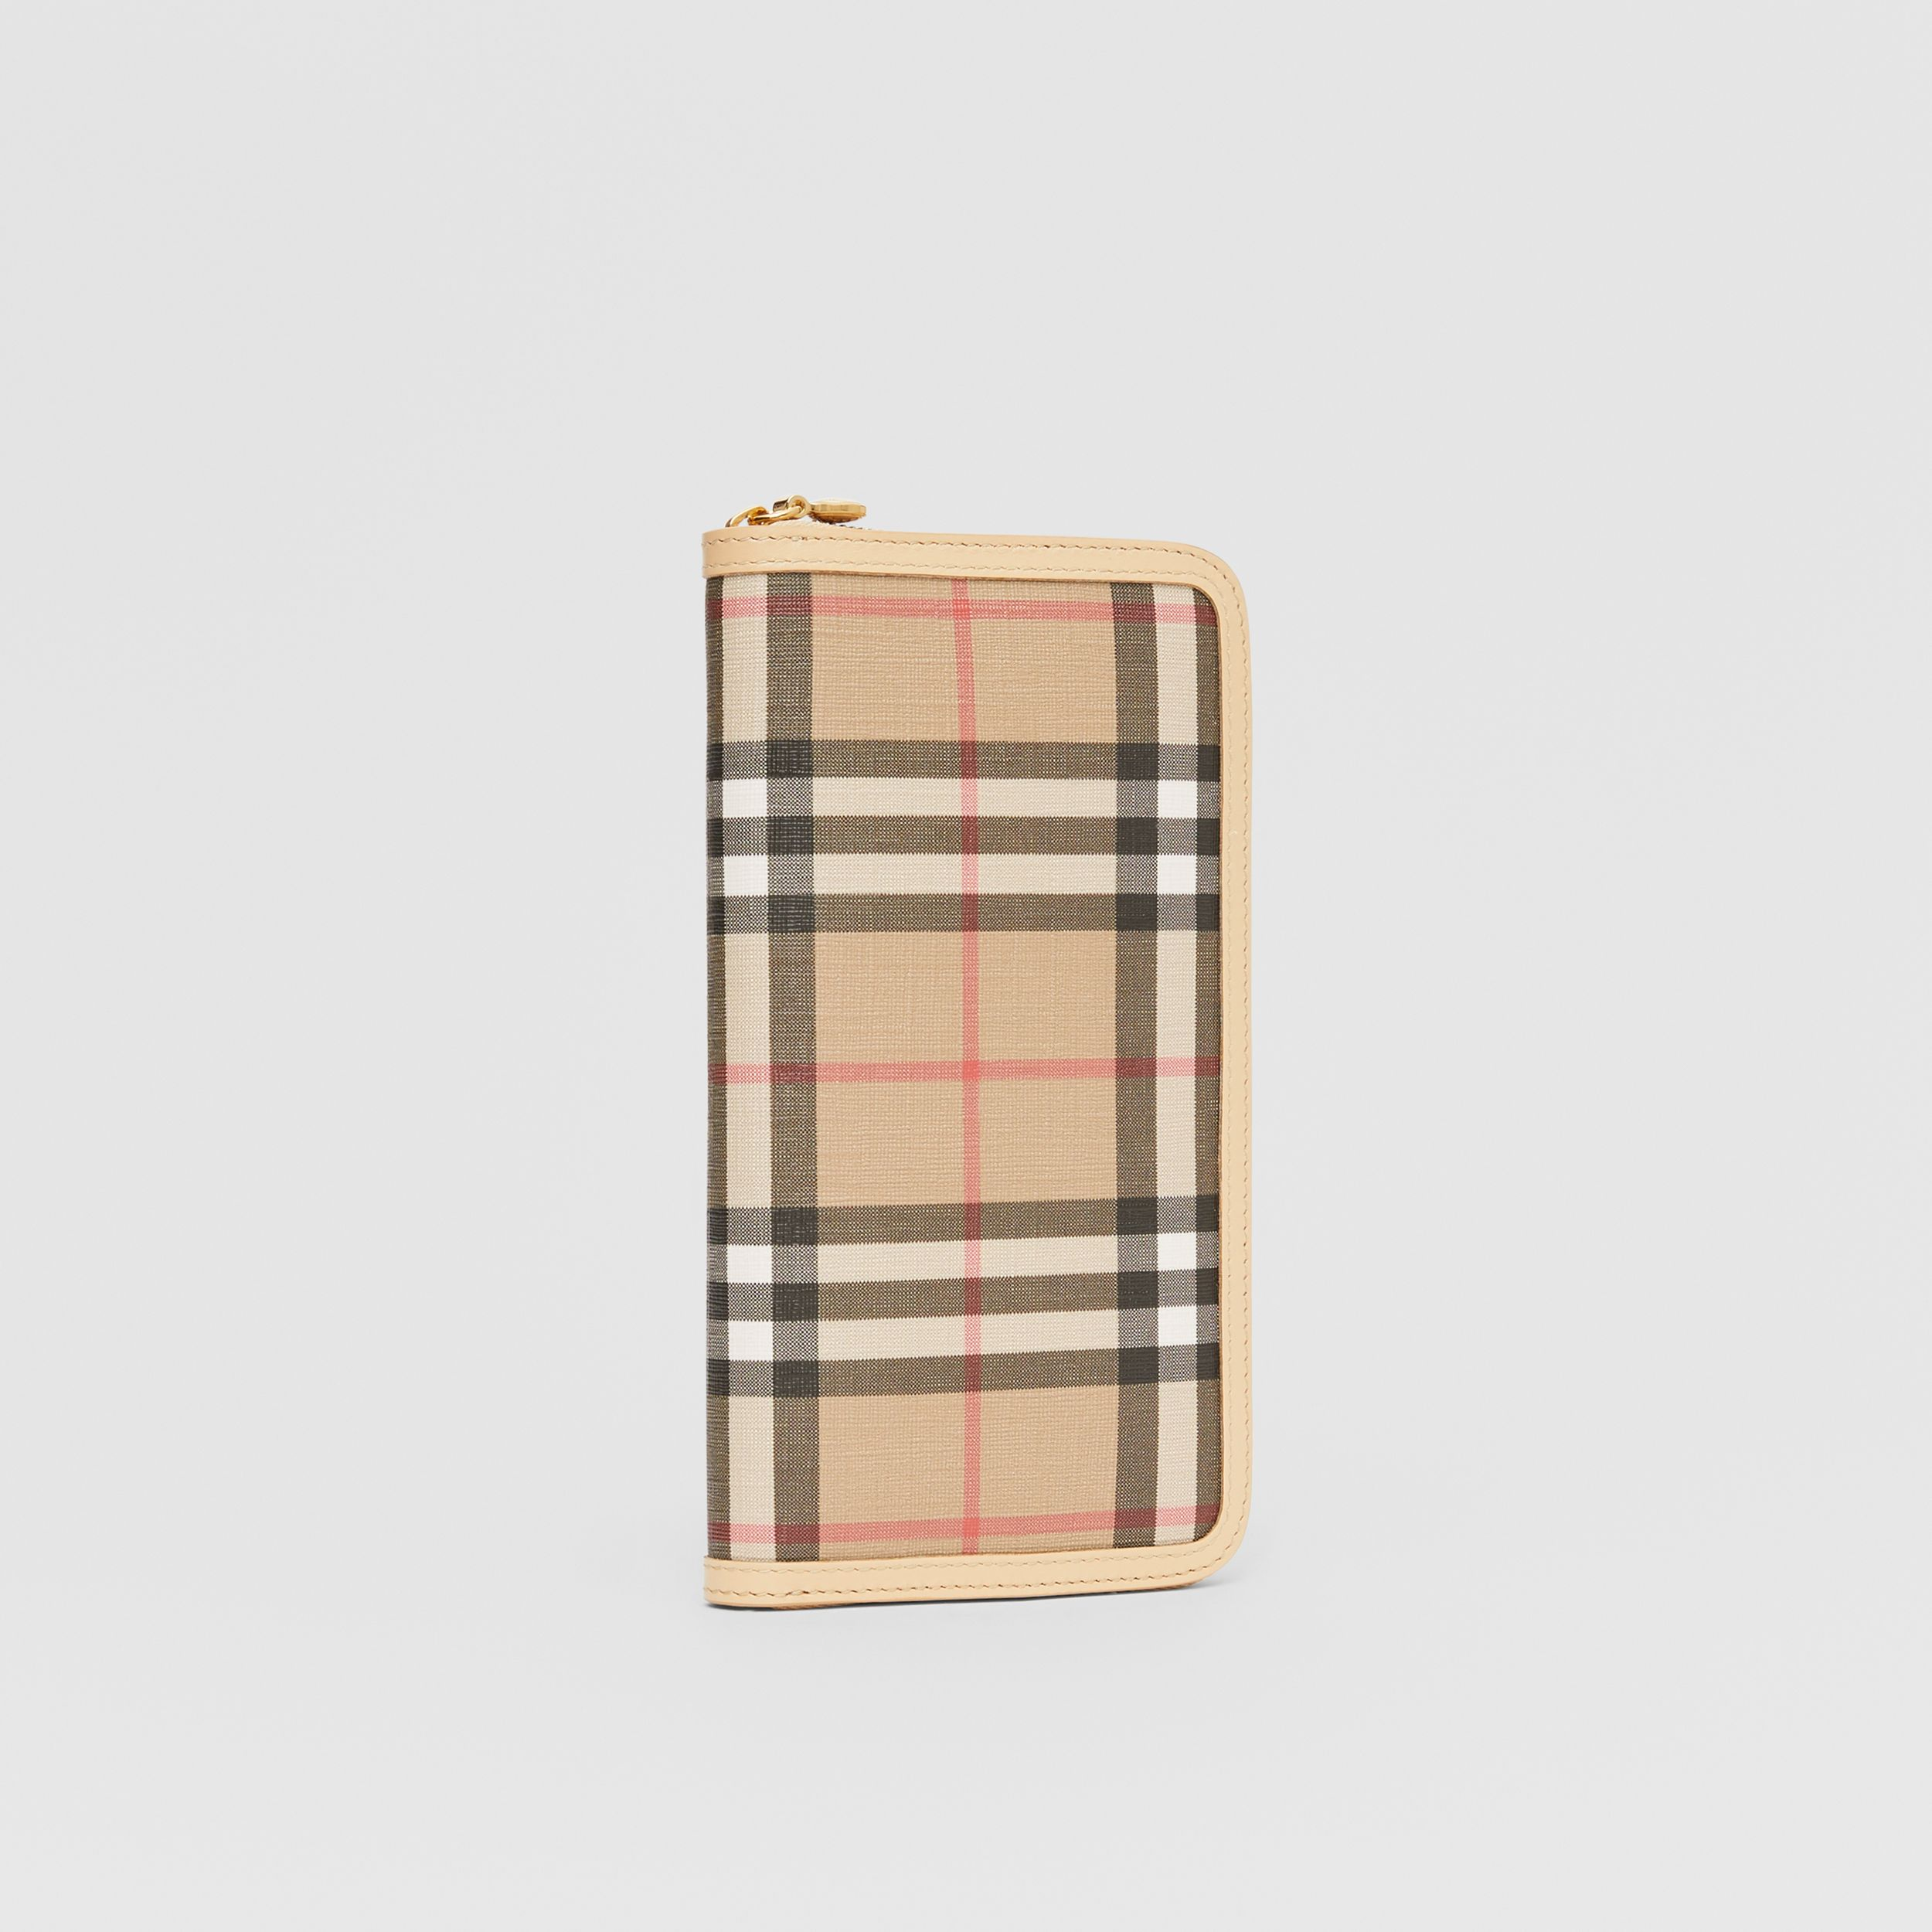 Vintage Check E-canvas and Leather Wallet in Beige - Women | Burberry - 4